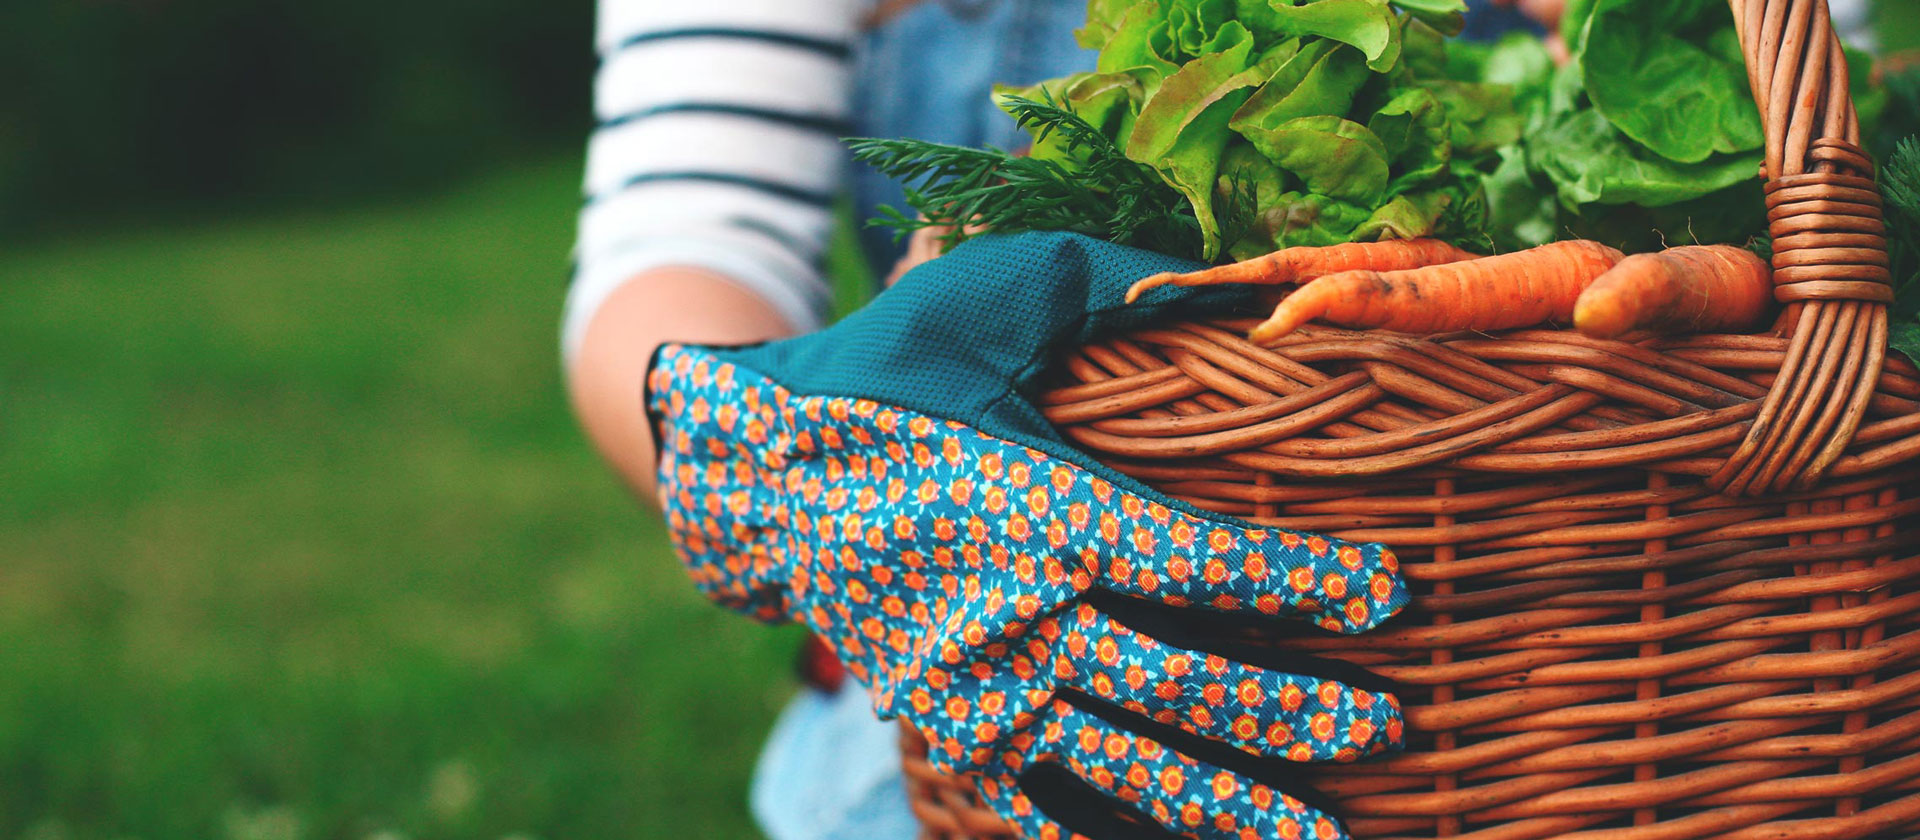 Person with gardening gloves holding basket of carrots, parsley and other vegetables.